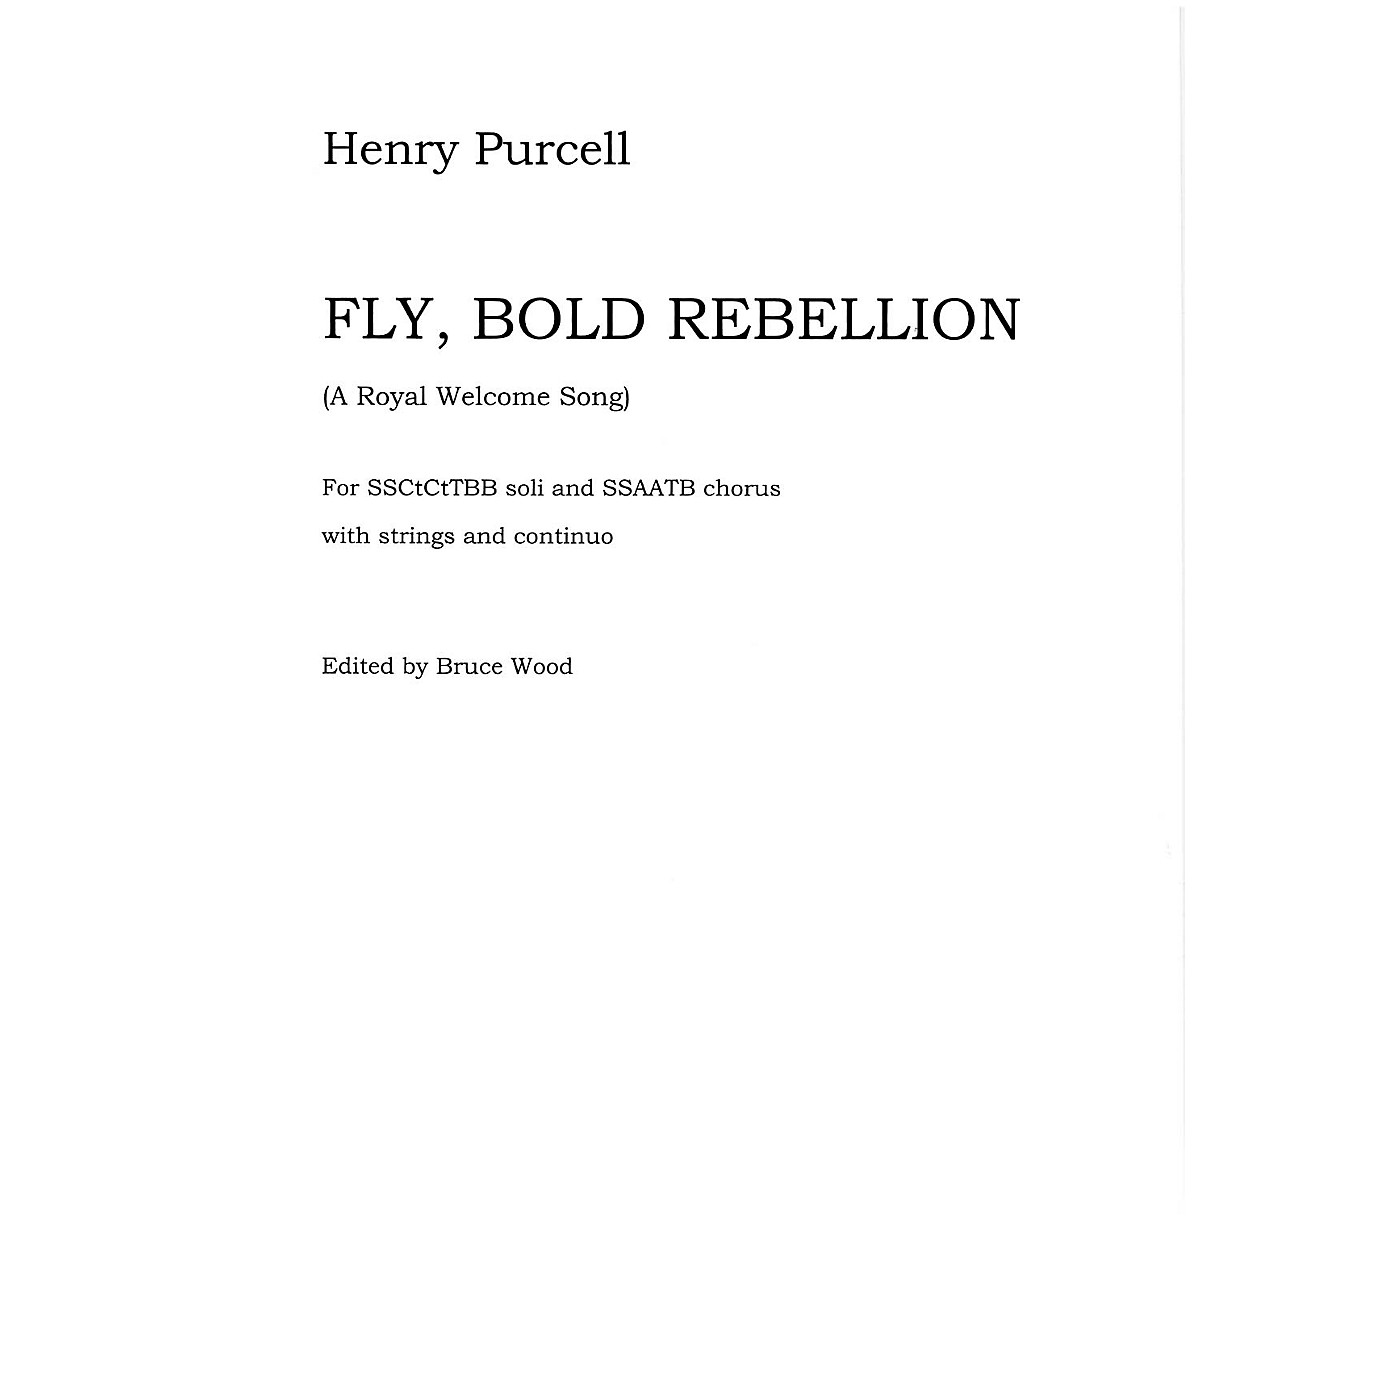 Novello Fly, Bold Rebellion (A Royal Welcome Song) - Full Score Full Score Composed by Henry Purcell thumbnail